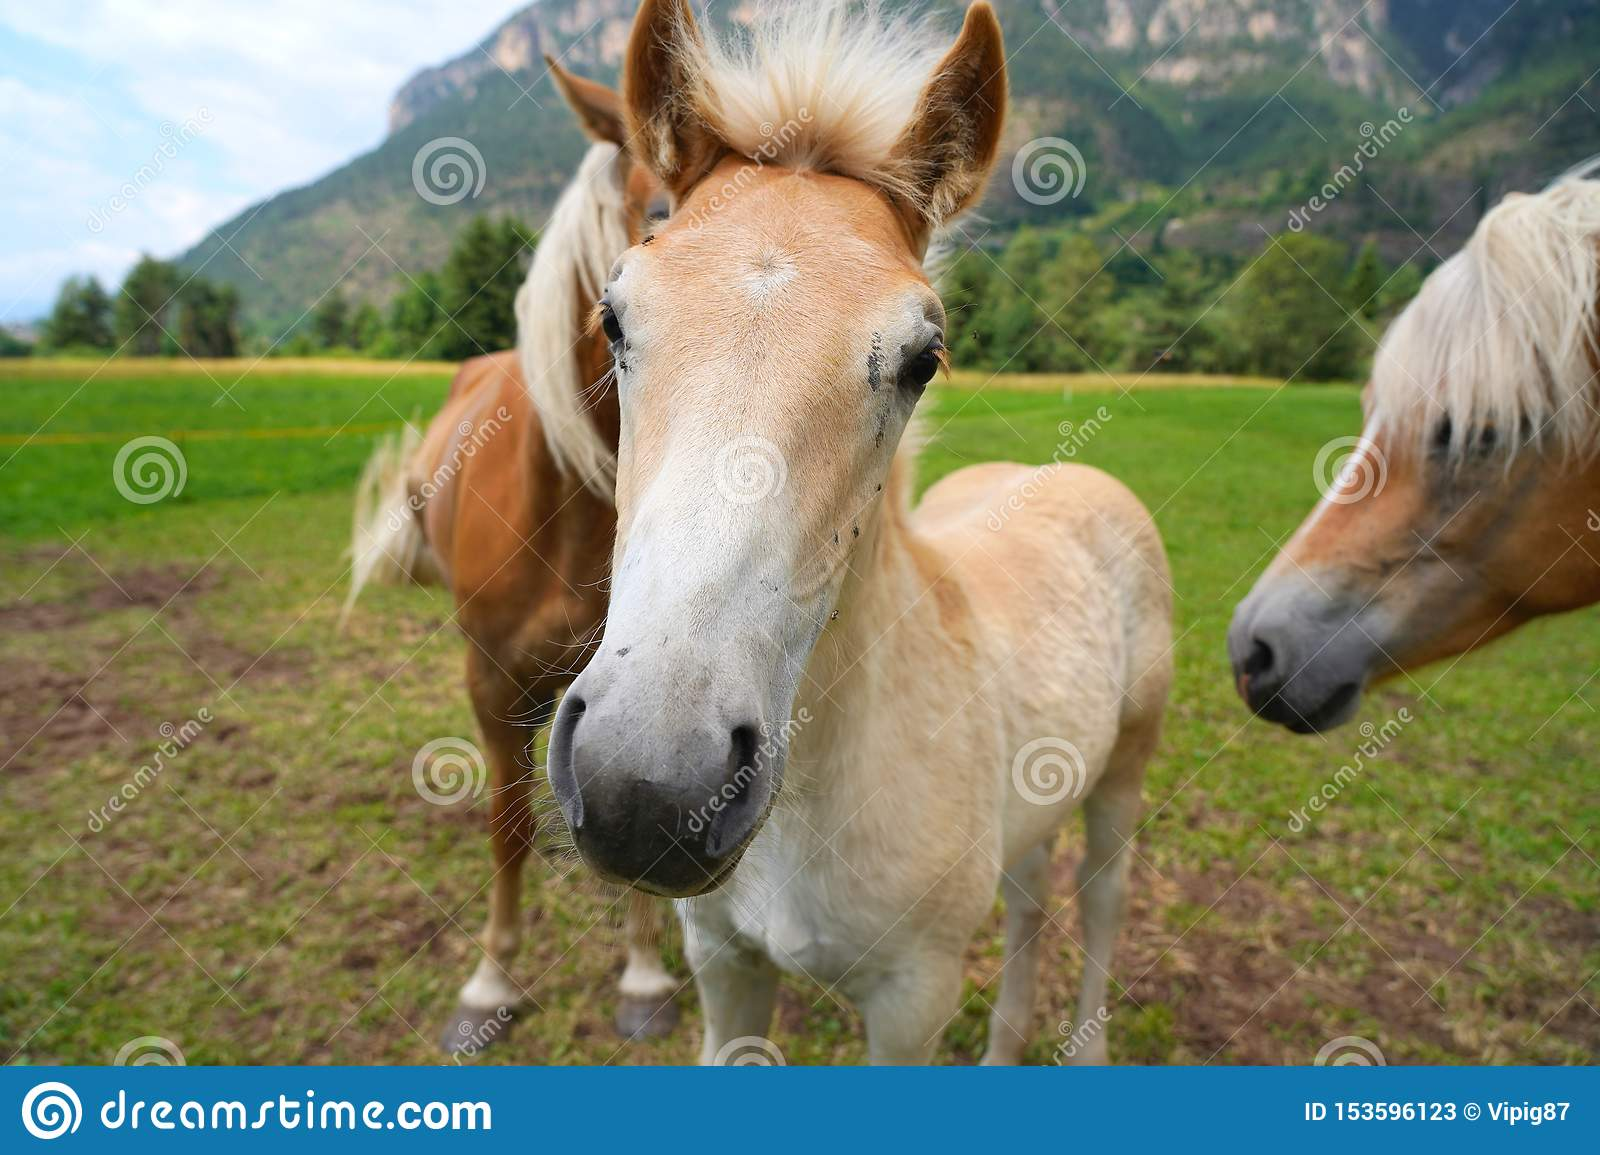 Palomino Horse Avelignese The Haflinger A Breed Of Horse Deve Stock Image Image Of Grass Field 153596123